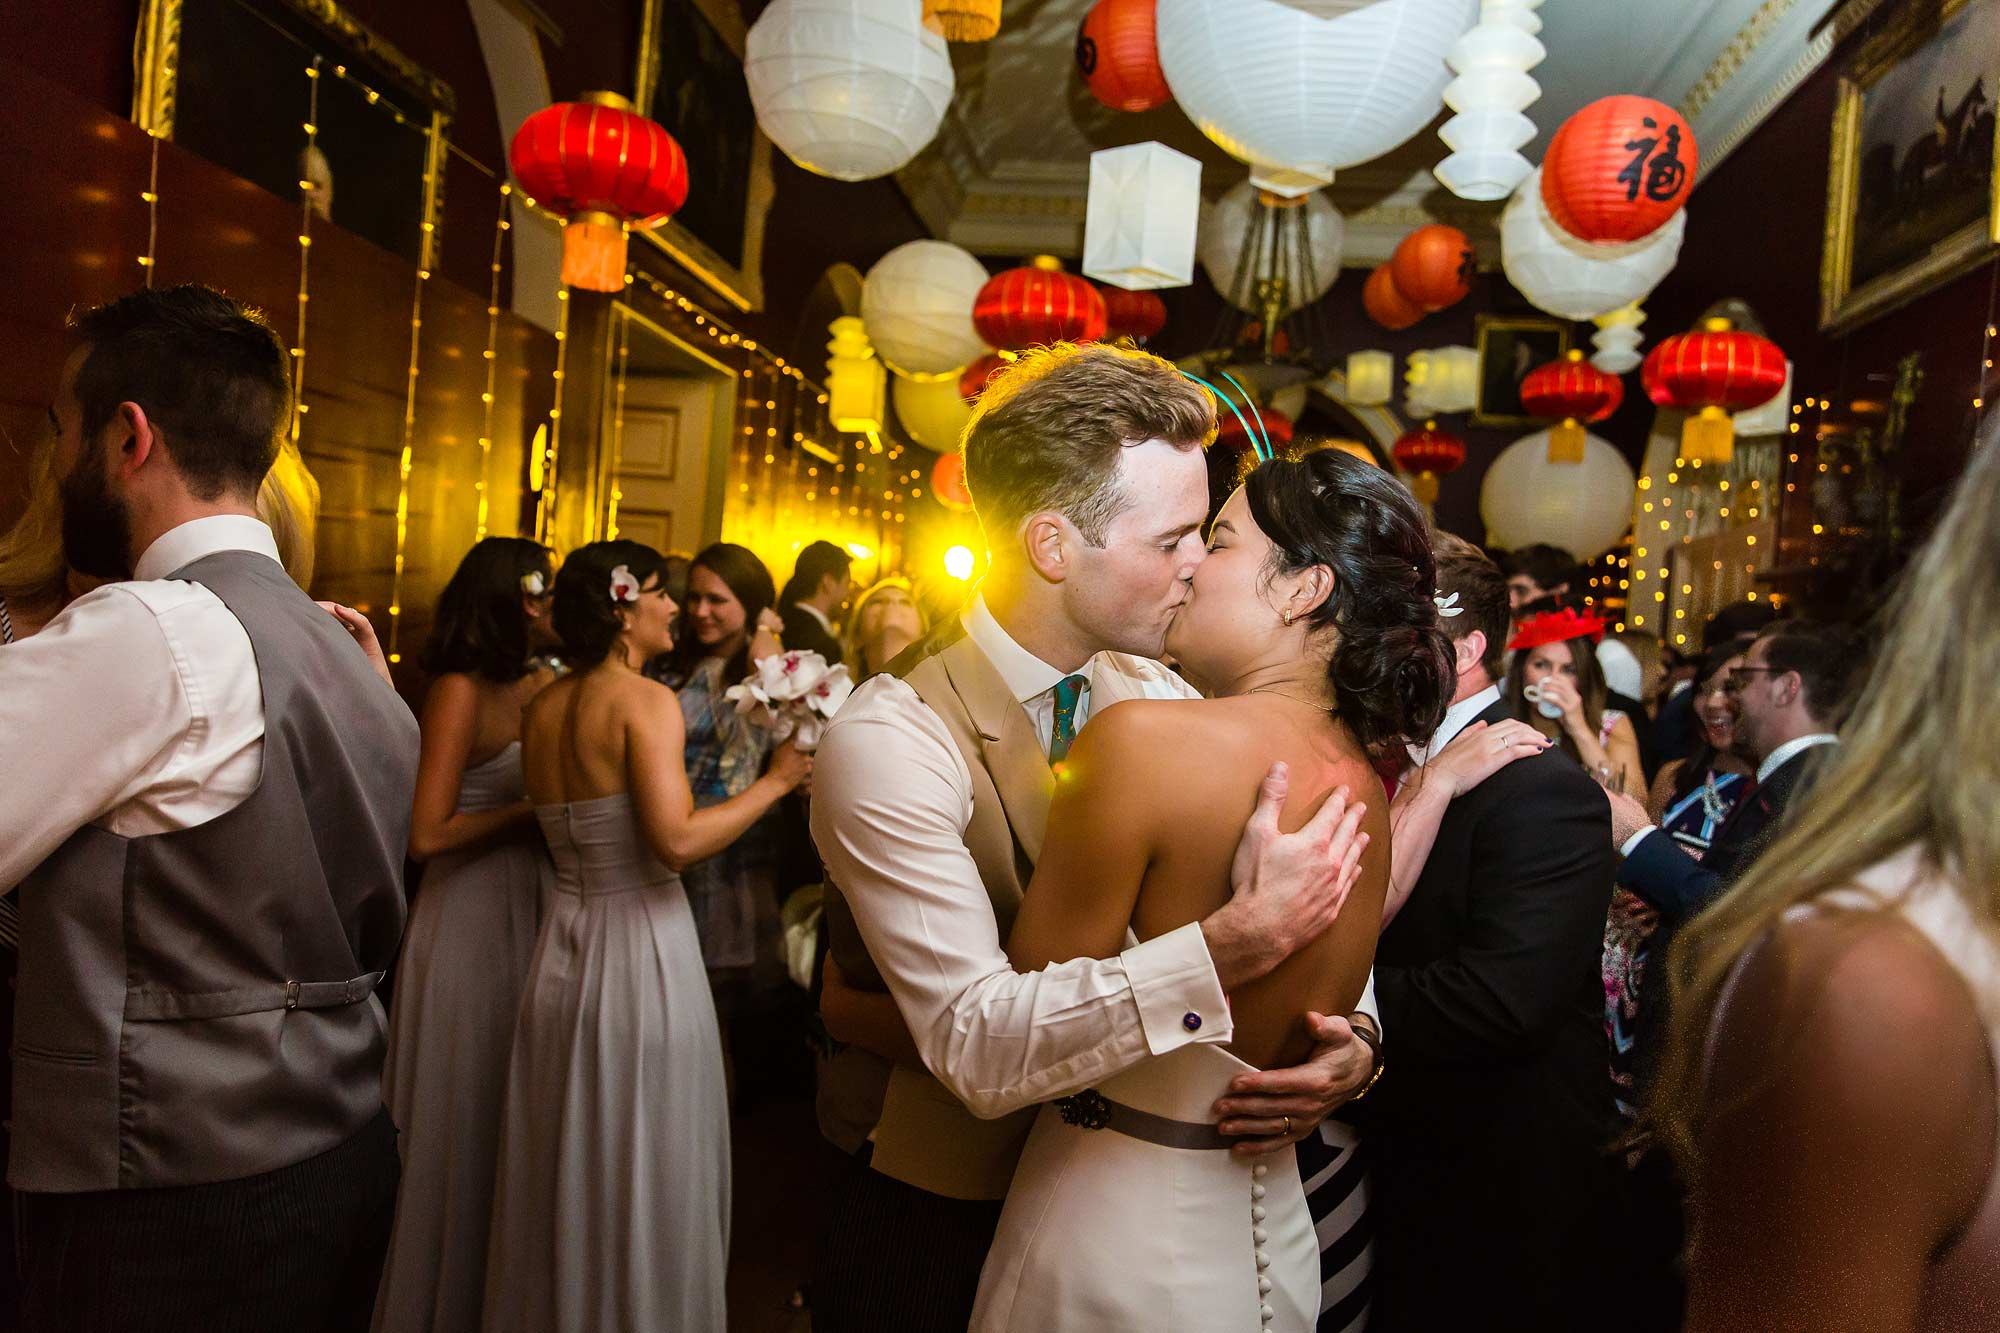 The couple kiss under lanterns